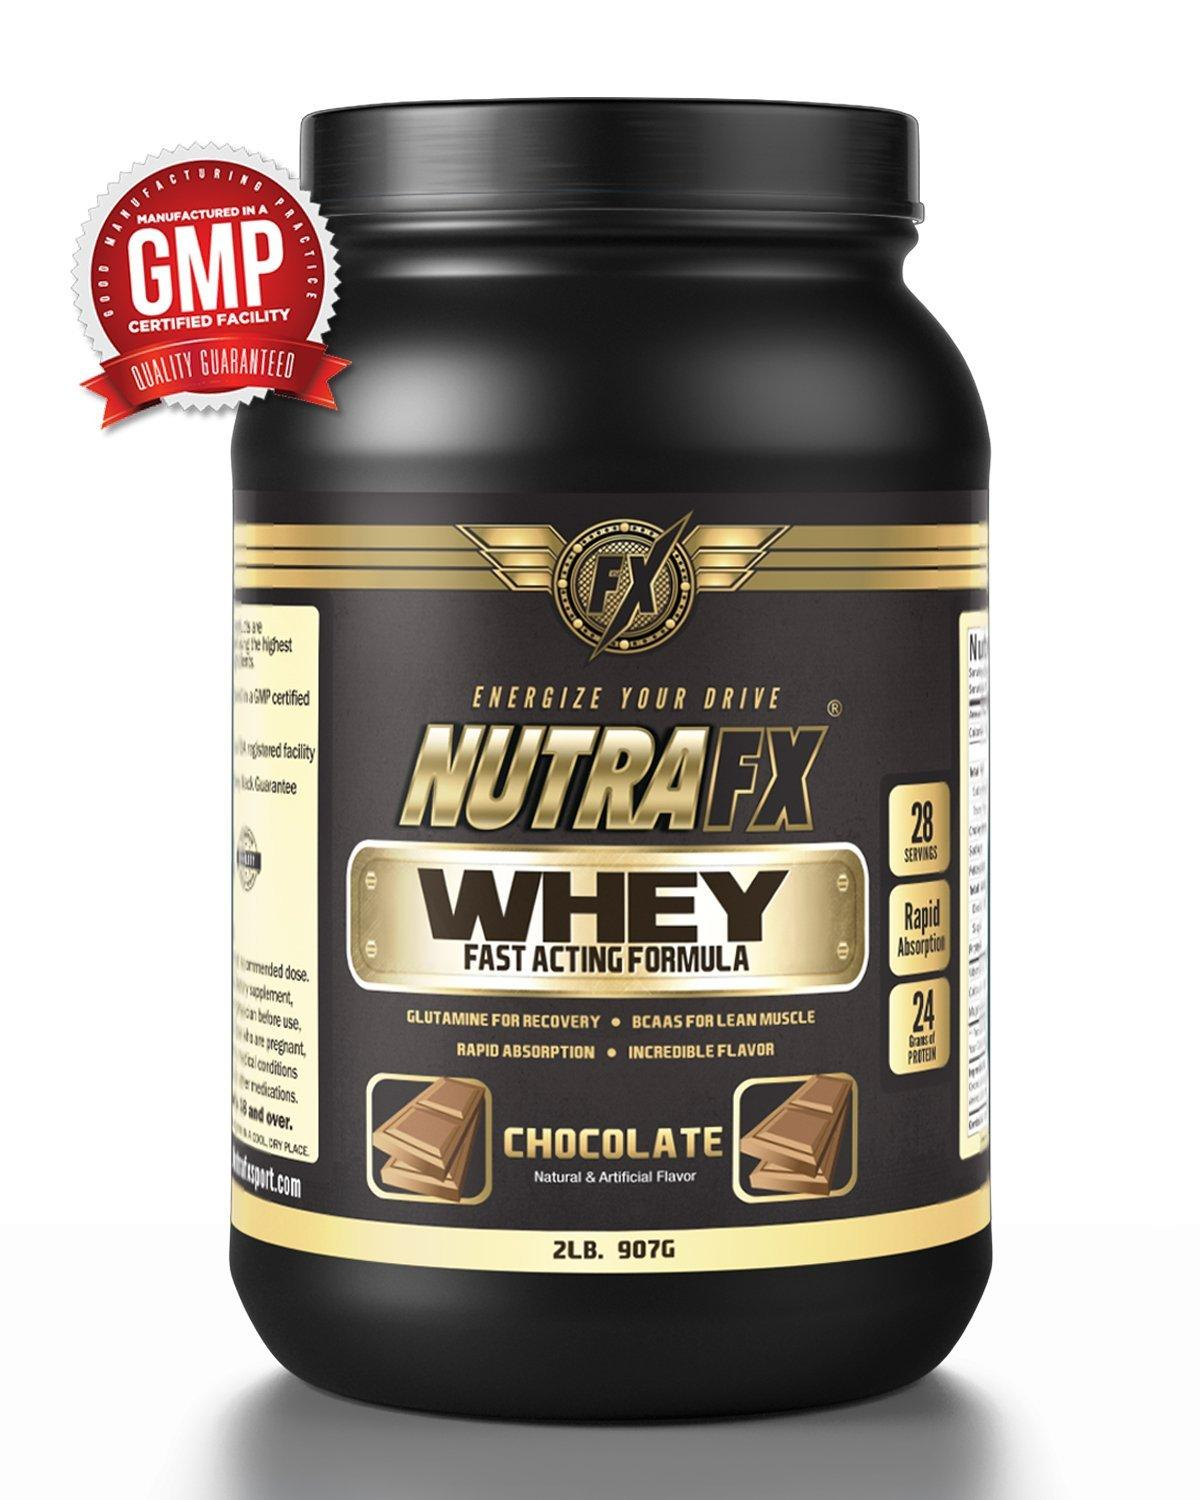 Nutrafx Whey Protein 2lb Chocolate Flavored Powder Bodybuilding Lean Muscle Build Supplement 24g Protein